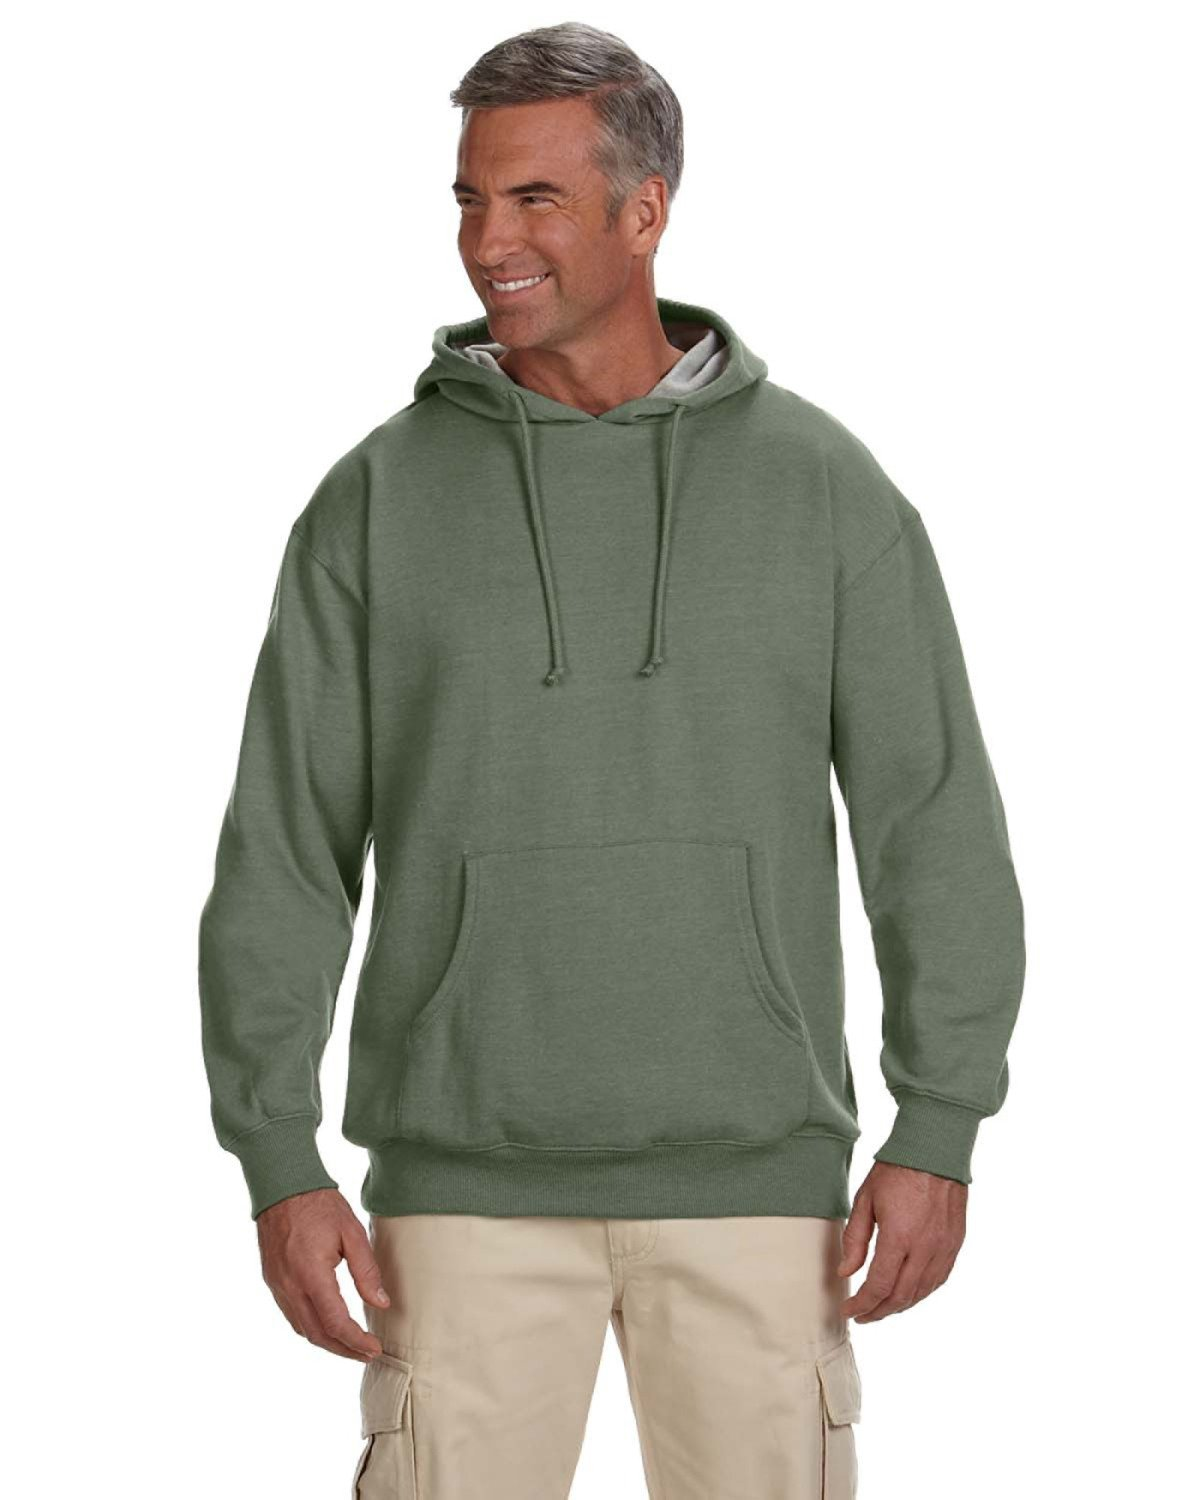 econscious Adult Organic/Recycled Heathered Fleece Pullover Hooded Sweatshirt MILITARY GREEN